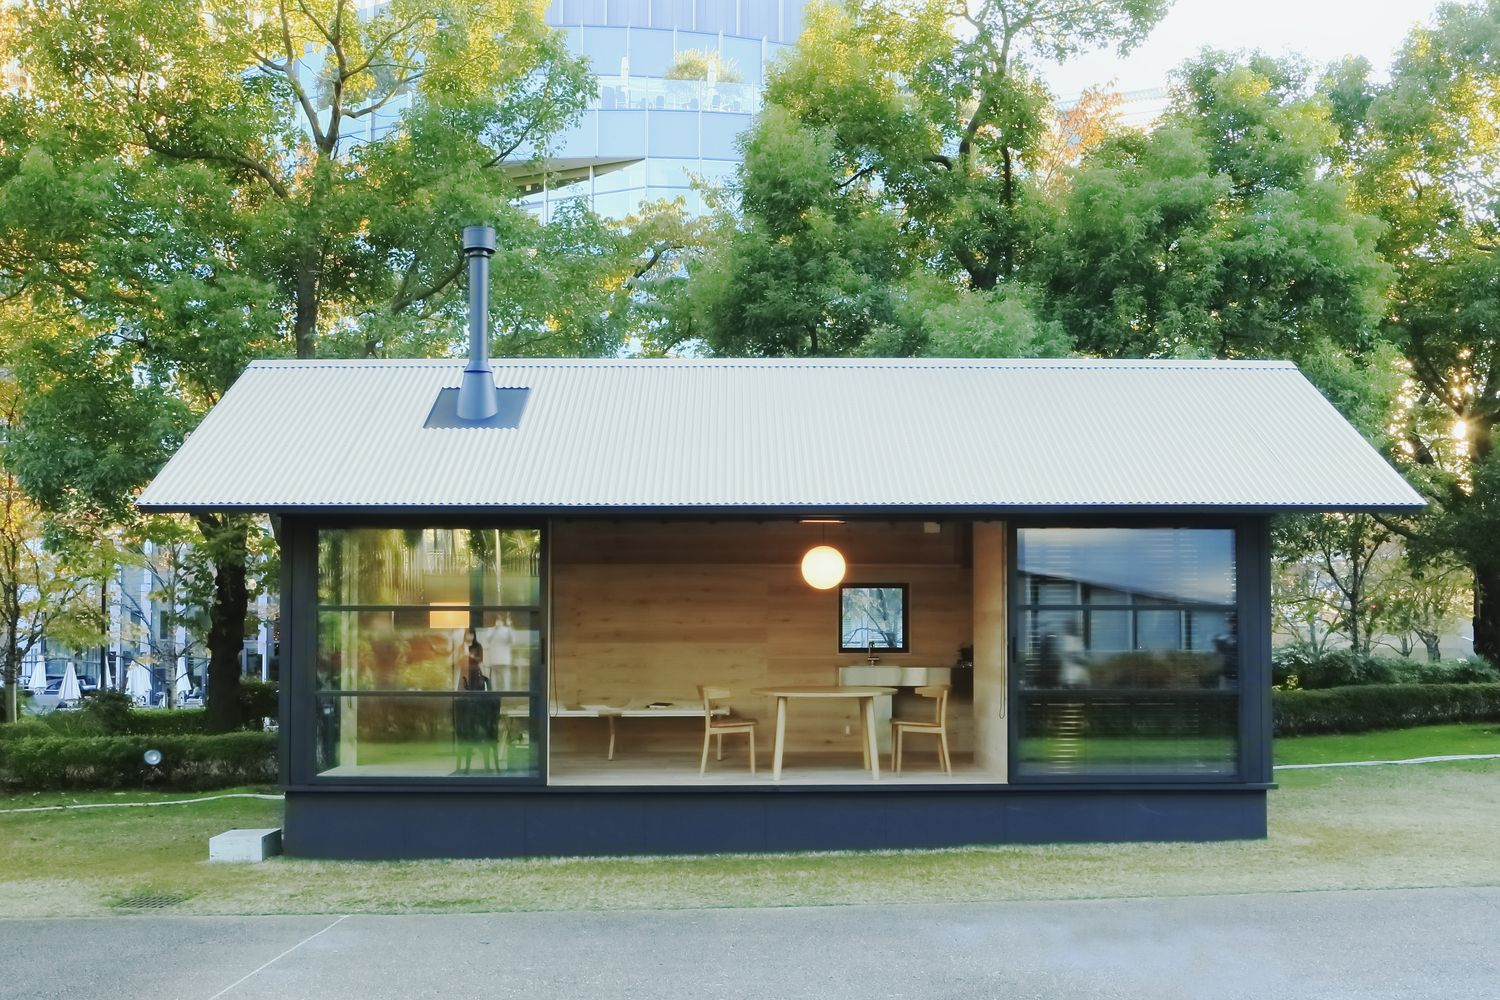 """Gallery - Muji Unveils Tiny, Pre-Fabricated """"Huts"""" at Tokyo Design Week - 1"""